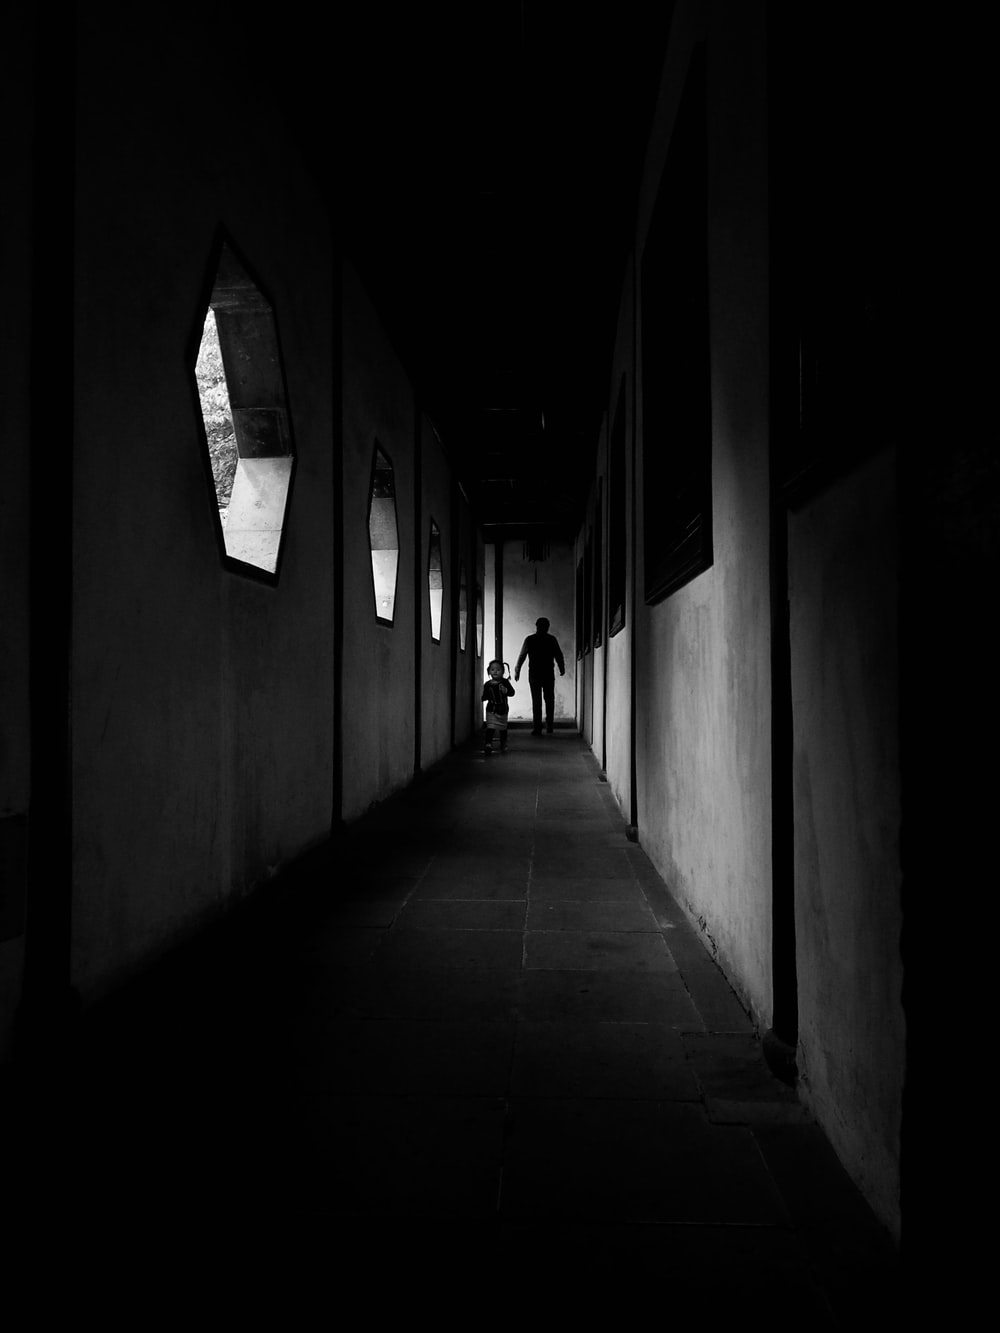 grayscale photography of two person walking on hallway